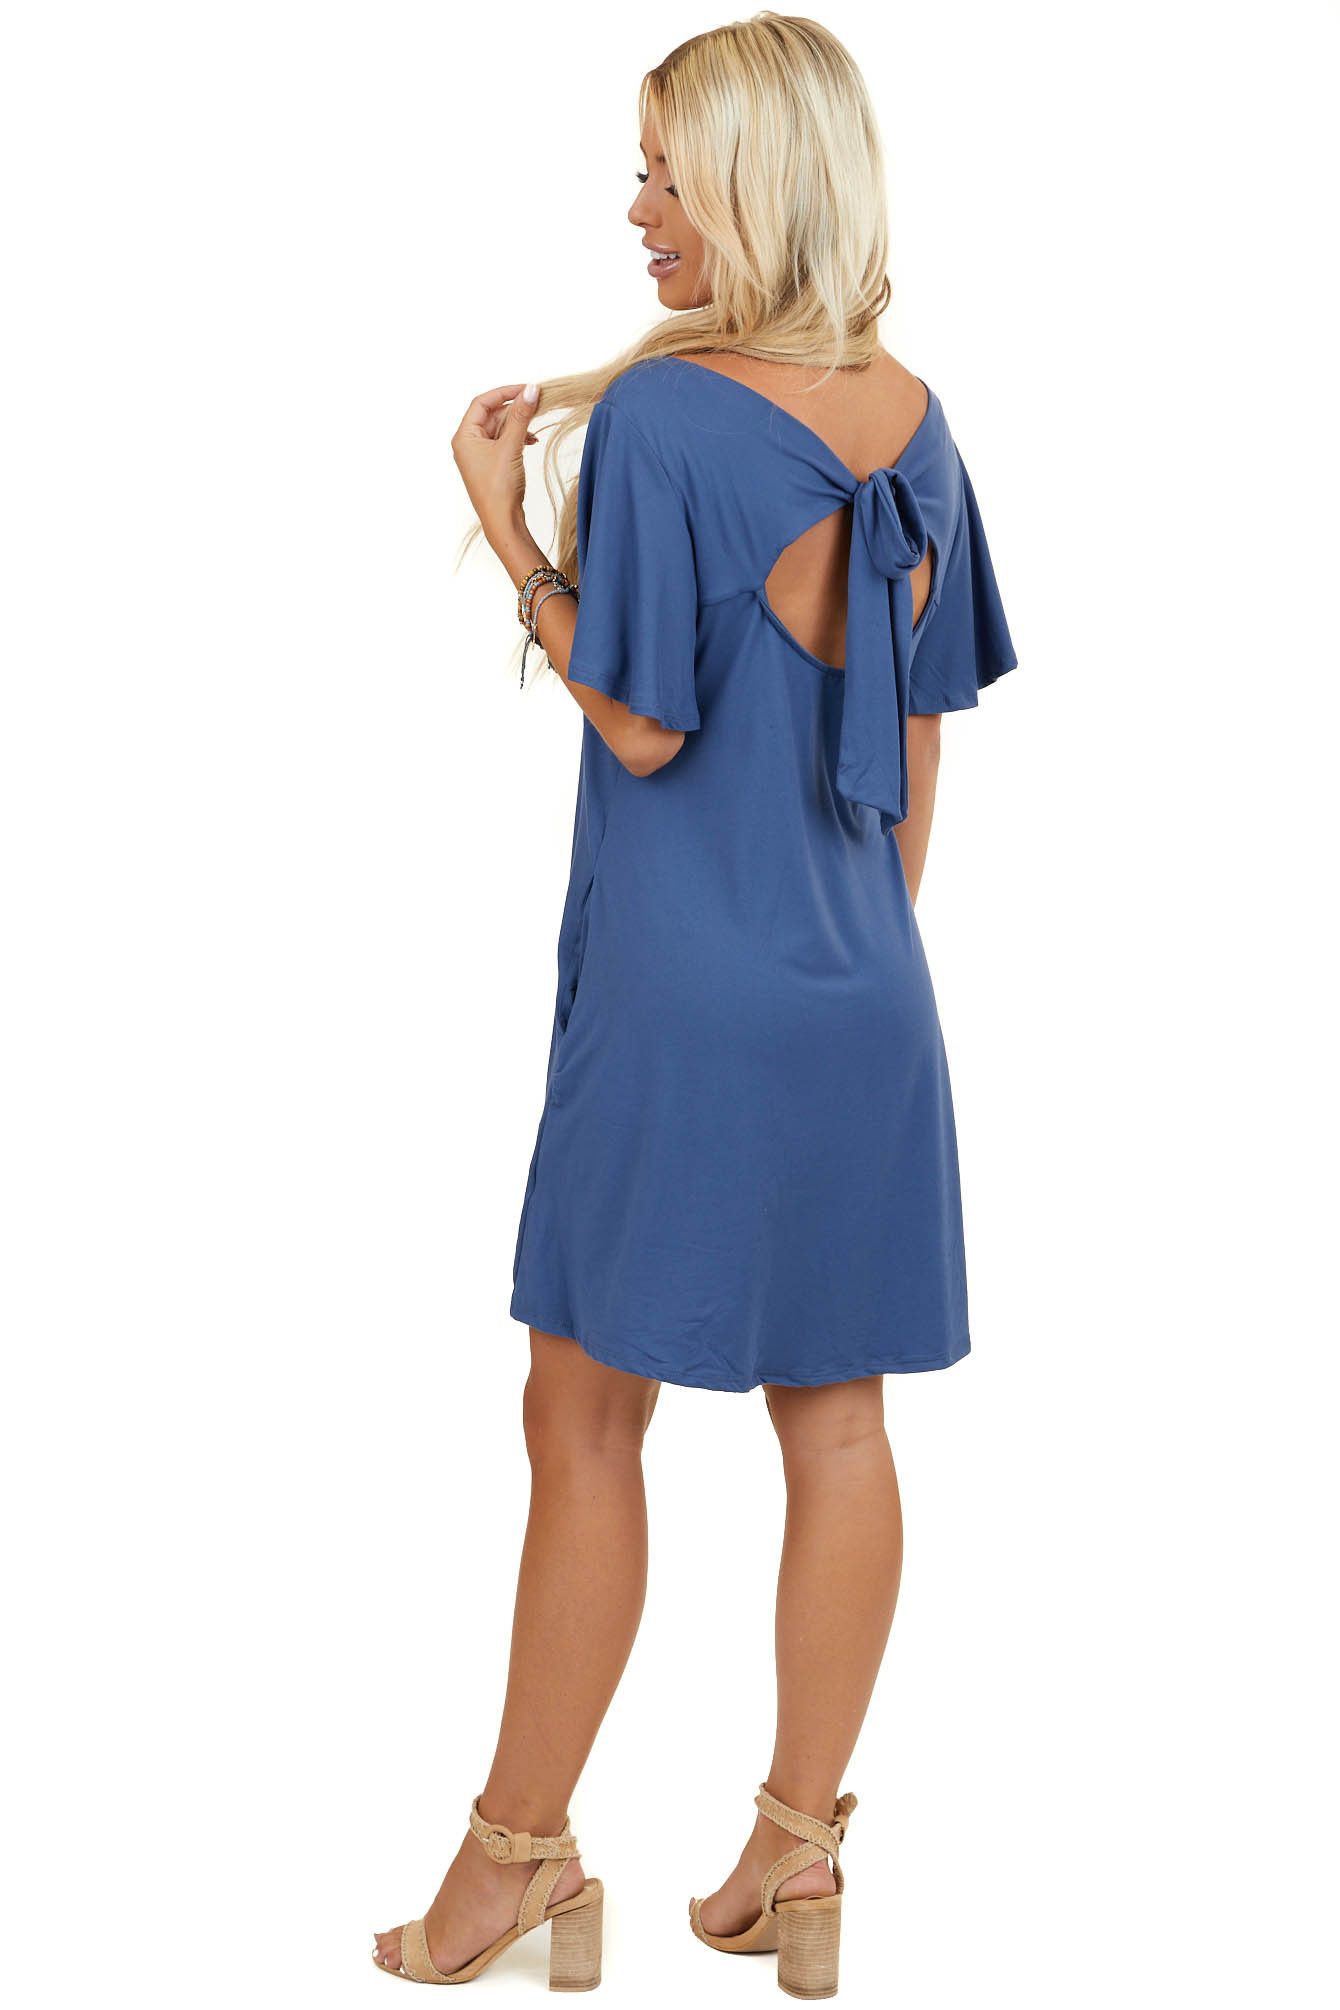 Dusty Blue Keyhole Back Dress with Tie Detail and Pockets